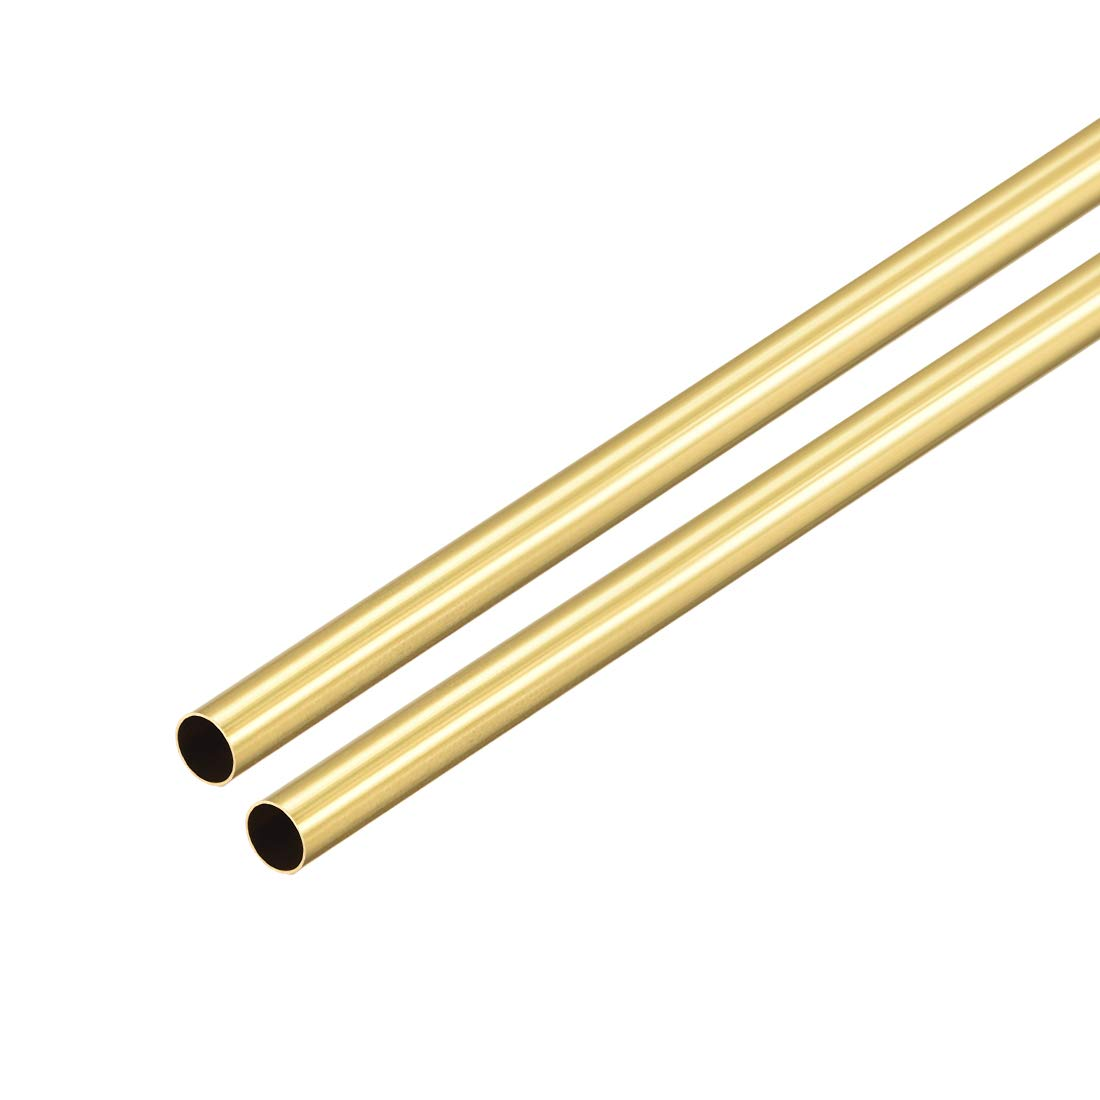 uxcell Brass Round Tube, 300mm Length 5mm OD 0.2mm Wall Thickness, Seamless Straight Pipe Tubing 2 Pcs